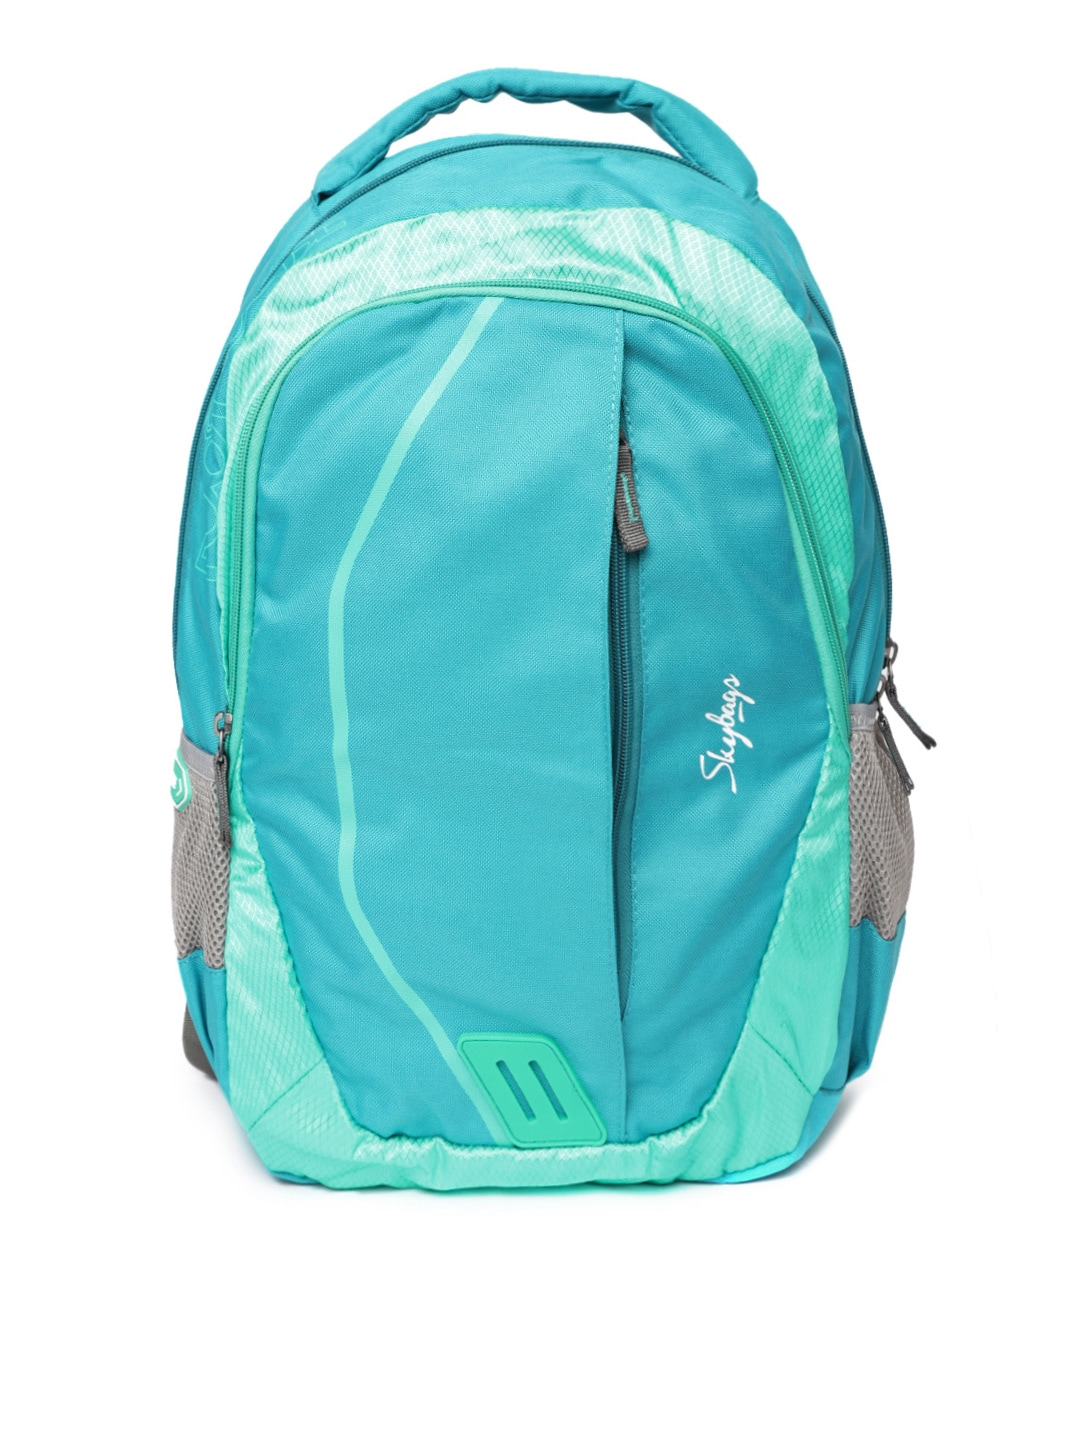 b9ca0d73b97e Skybags Women Backpacks - Buy Skybags Women Backpacks online in India